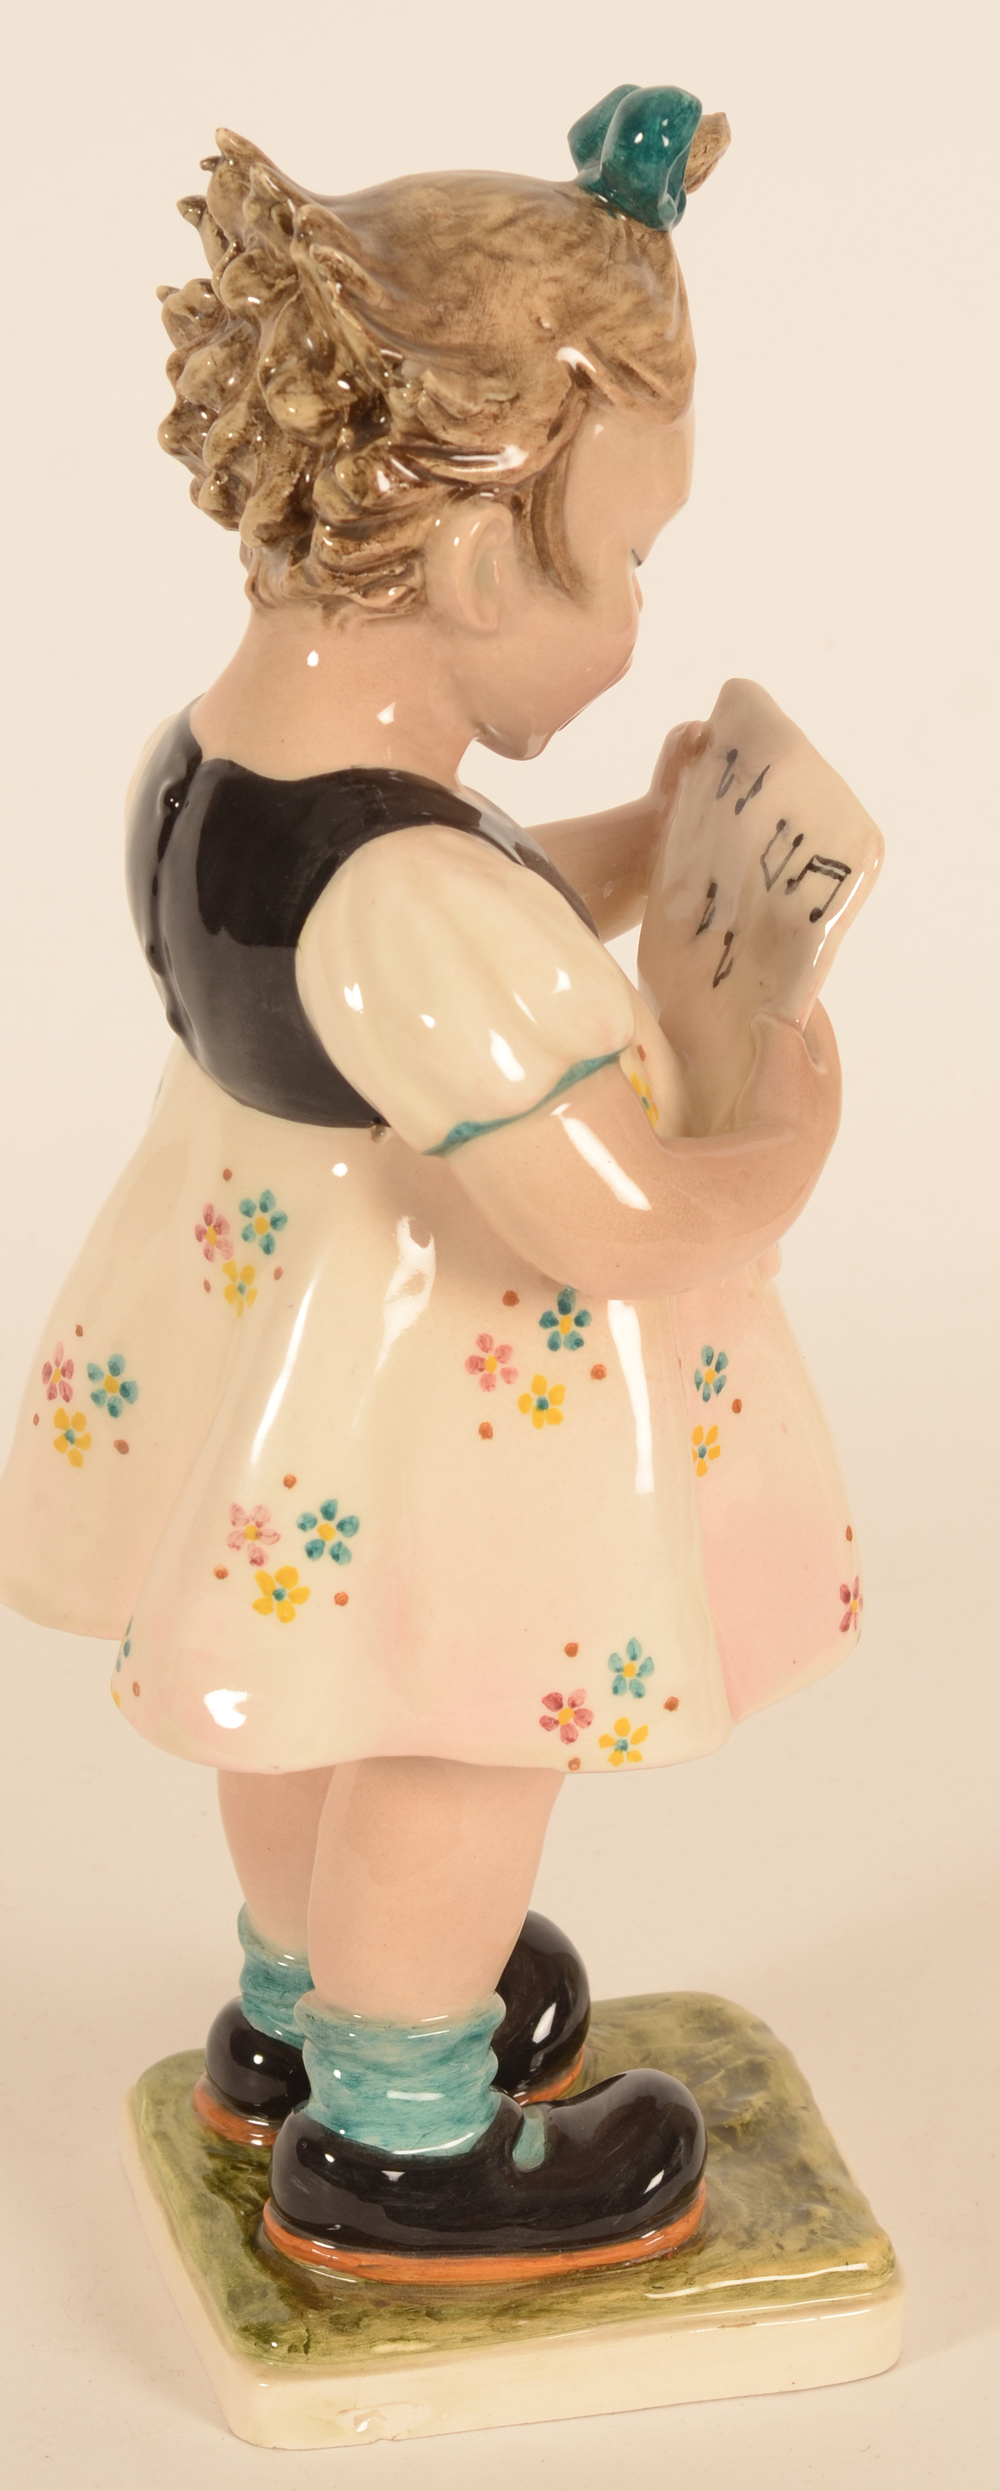 Italian ceramic sculpture — view from the right hand side